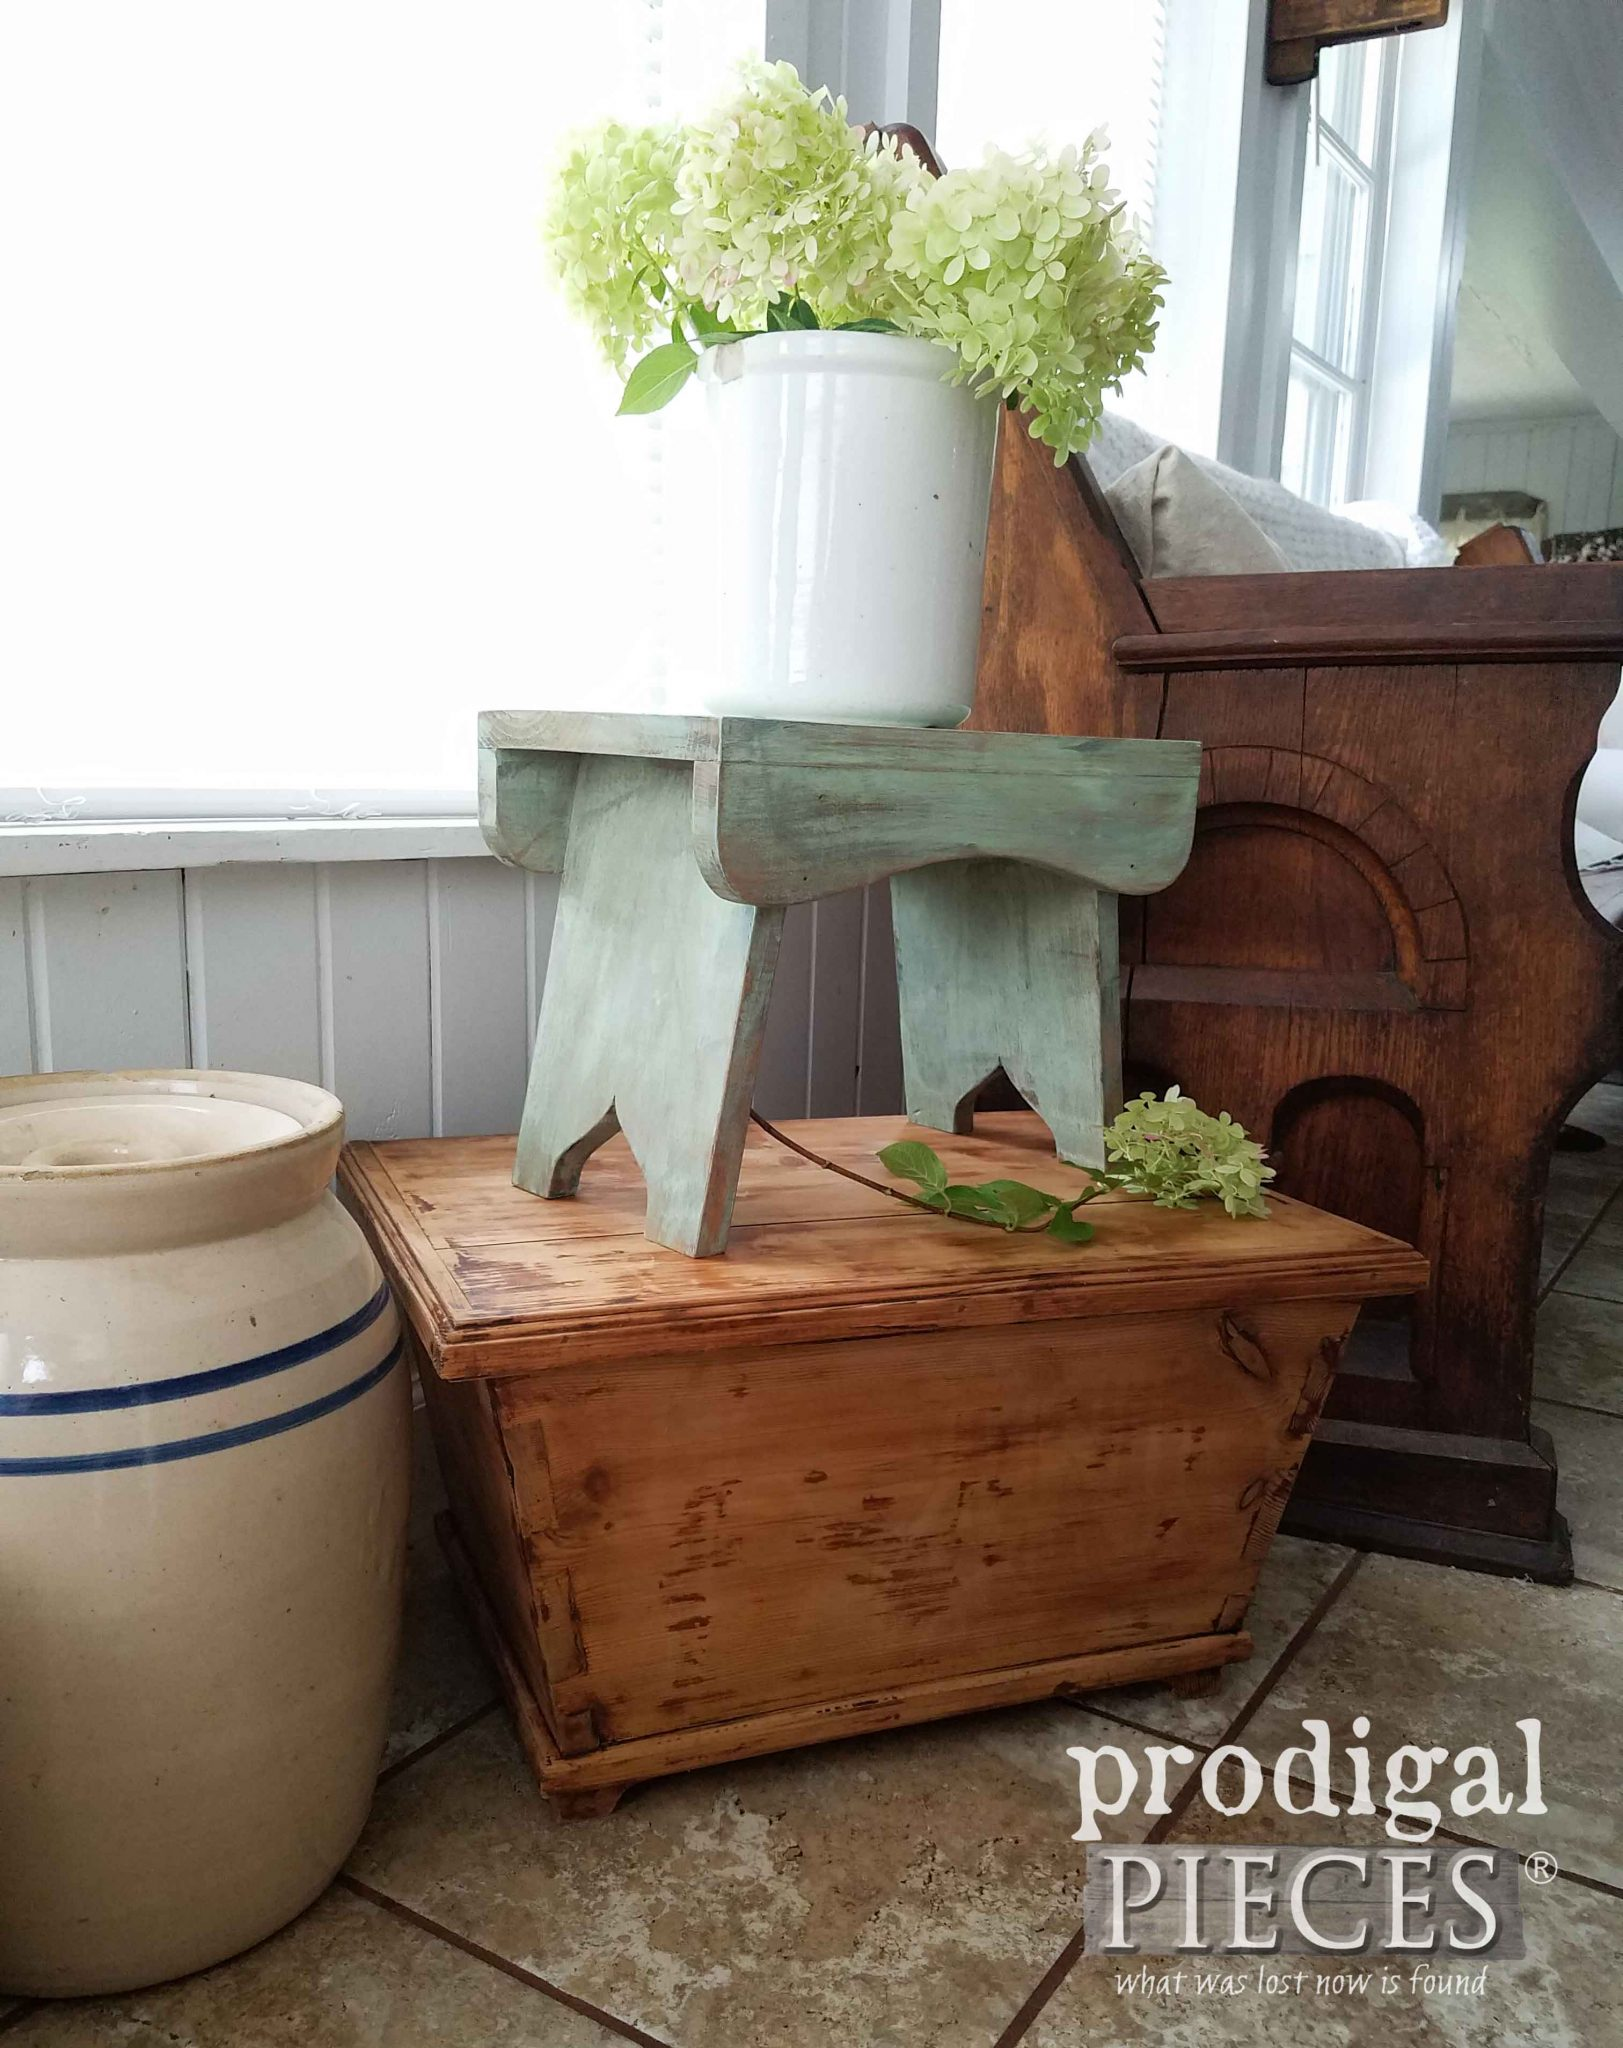 Farmhouse Style Vignette Using Thrifted Finds by Prodigal Pieces | prodigalpieces.com